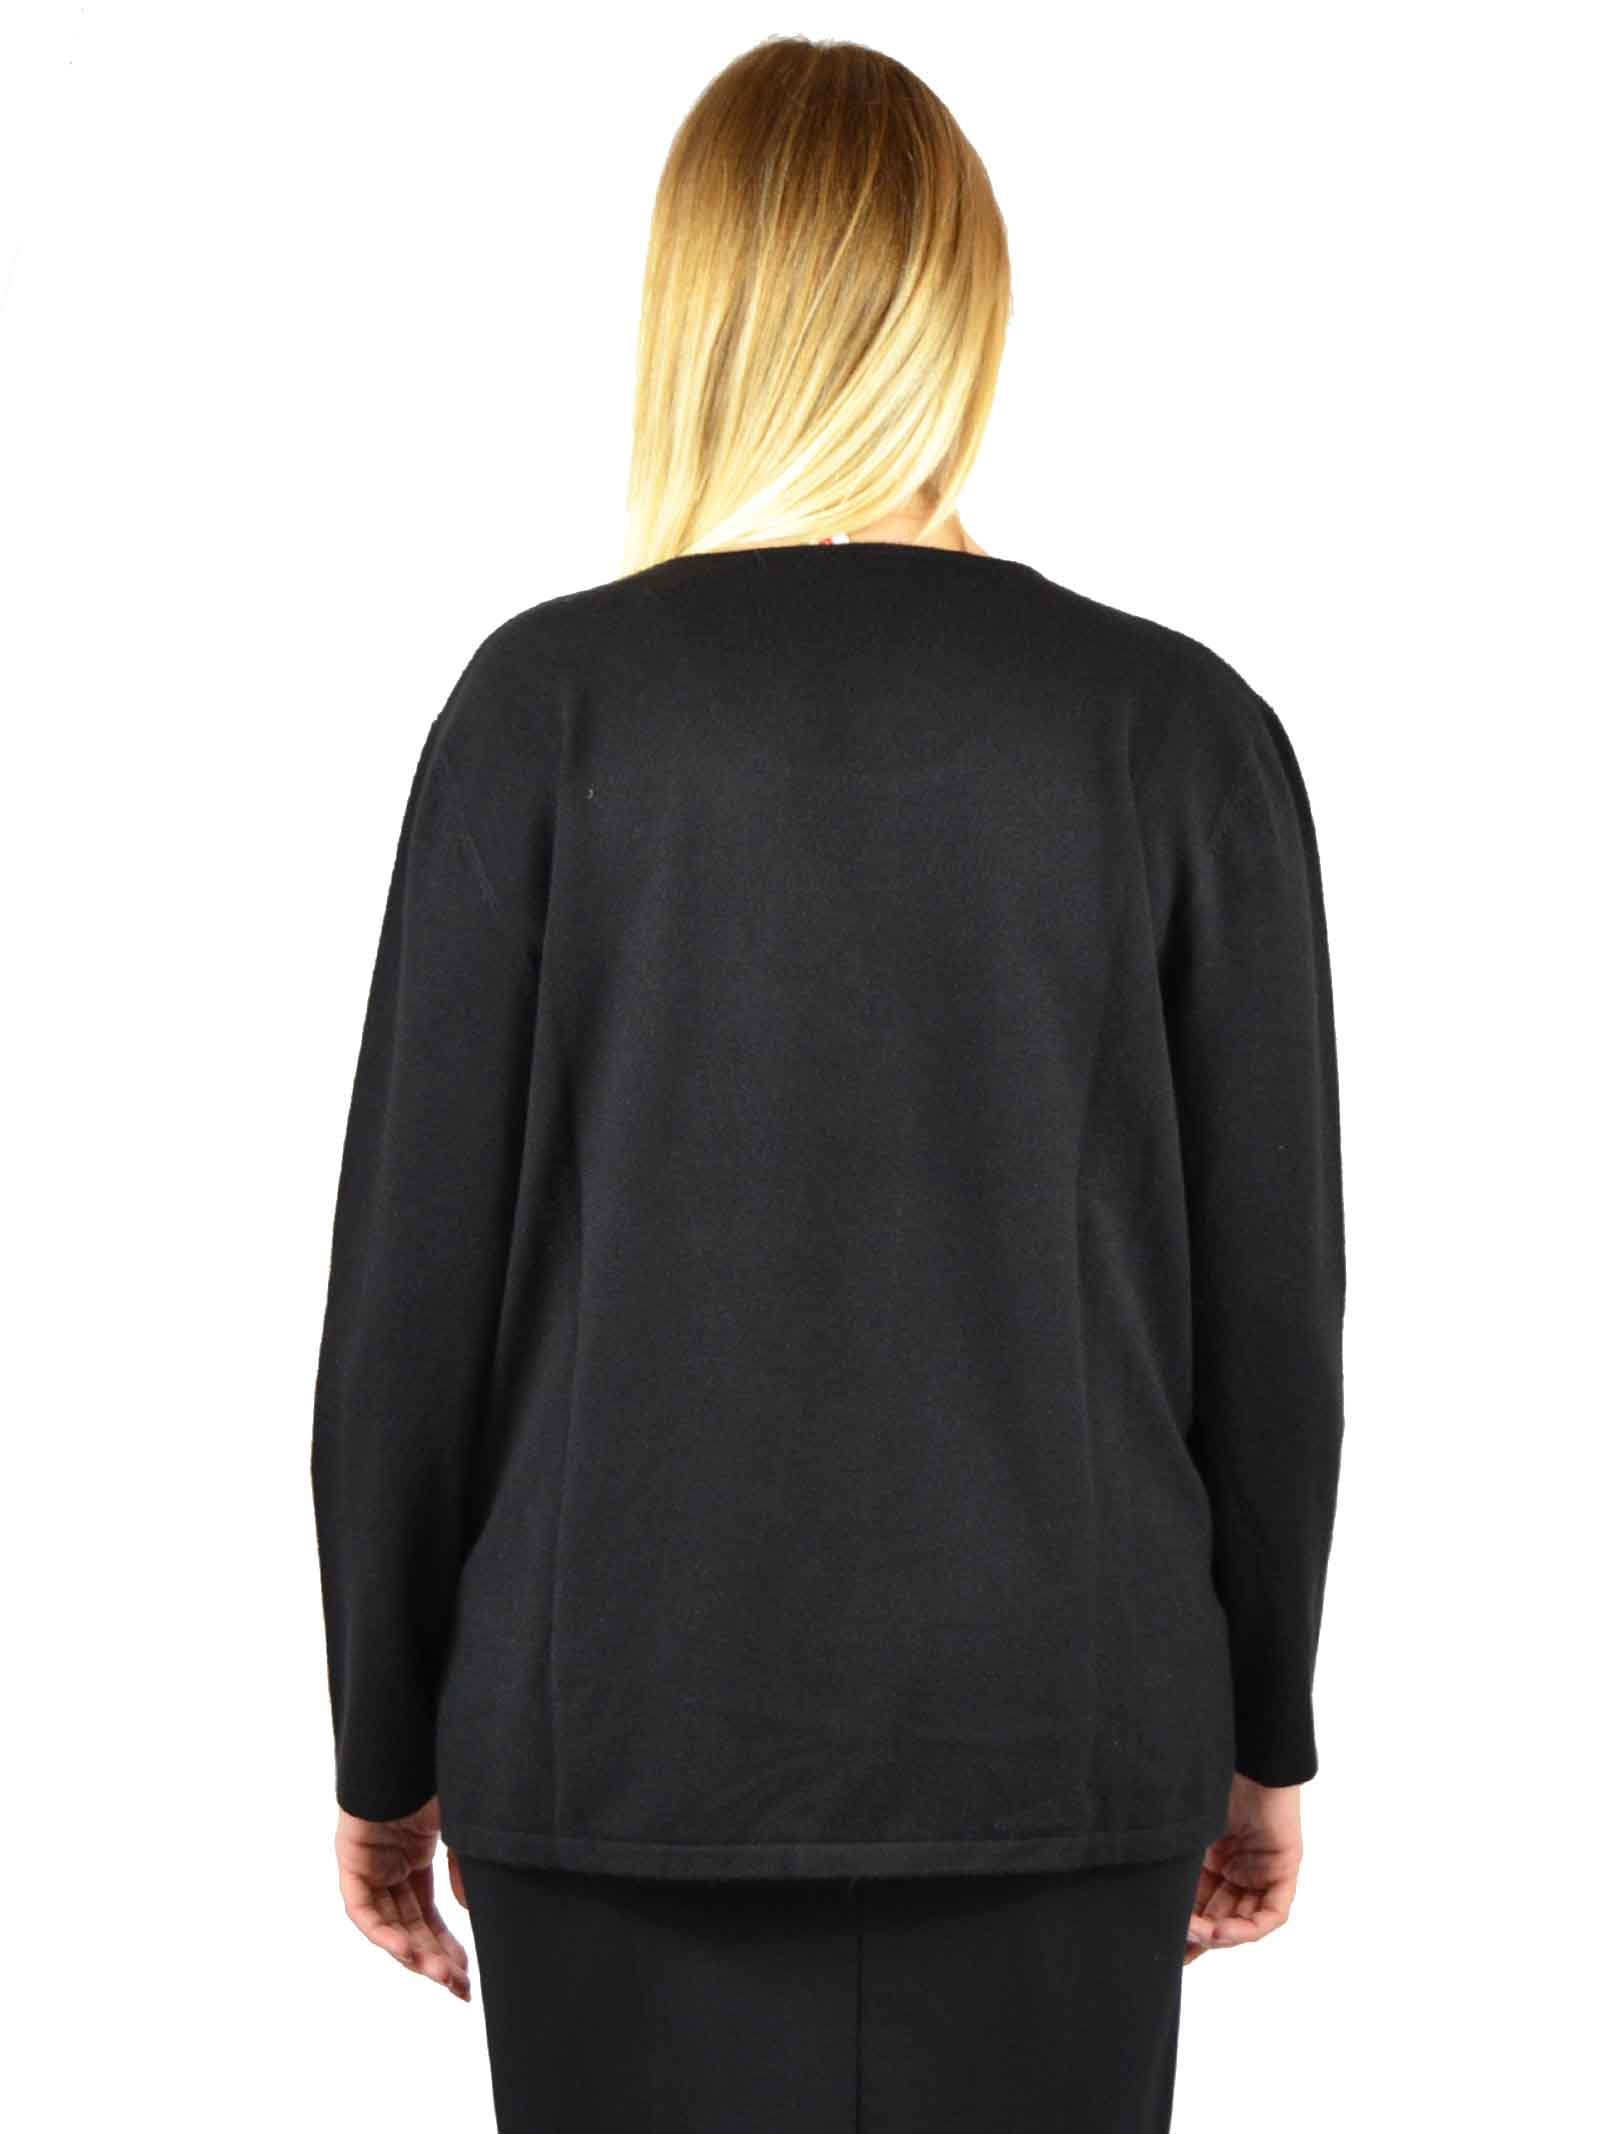 Wool sweater aound neck MEALYS |  | 411101